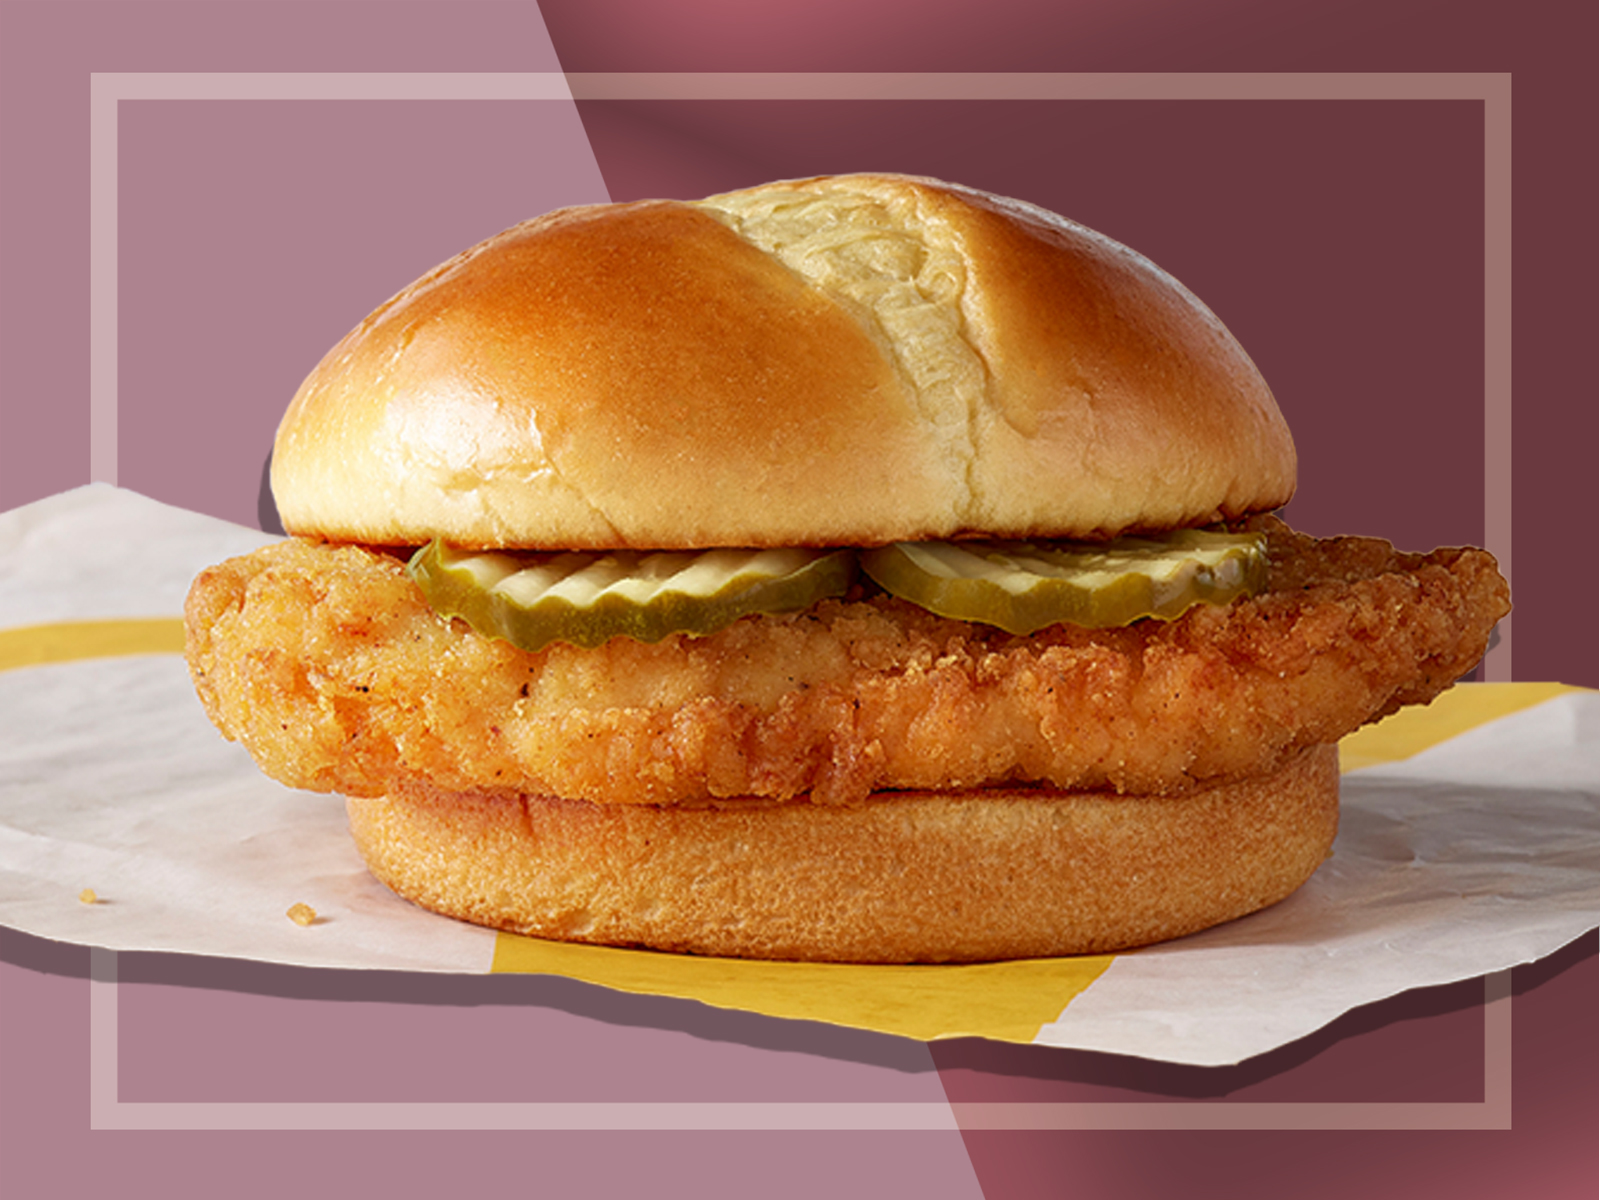 McDonalds-New-Crispy-Chicken-Sandwich-FT-BLOG1219.jpg